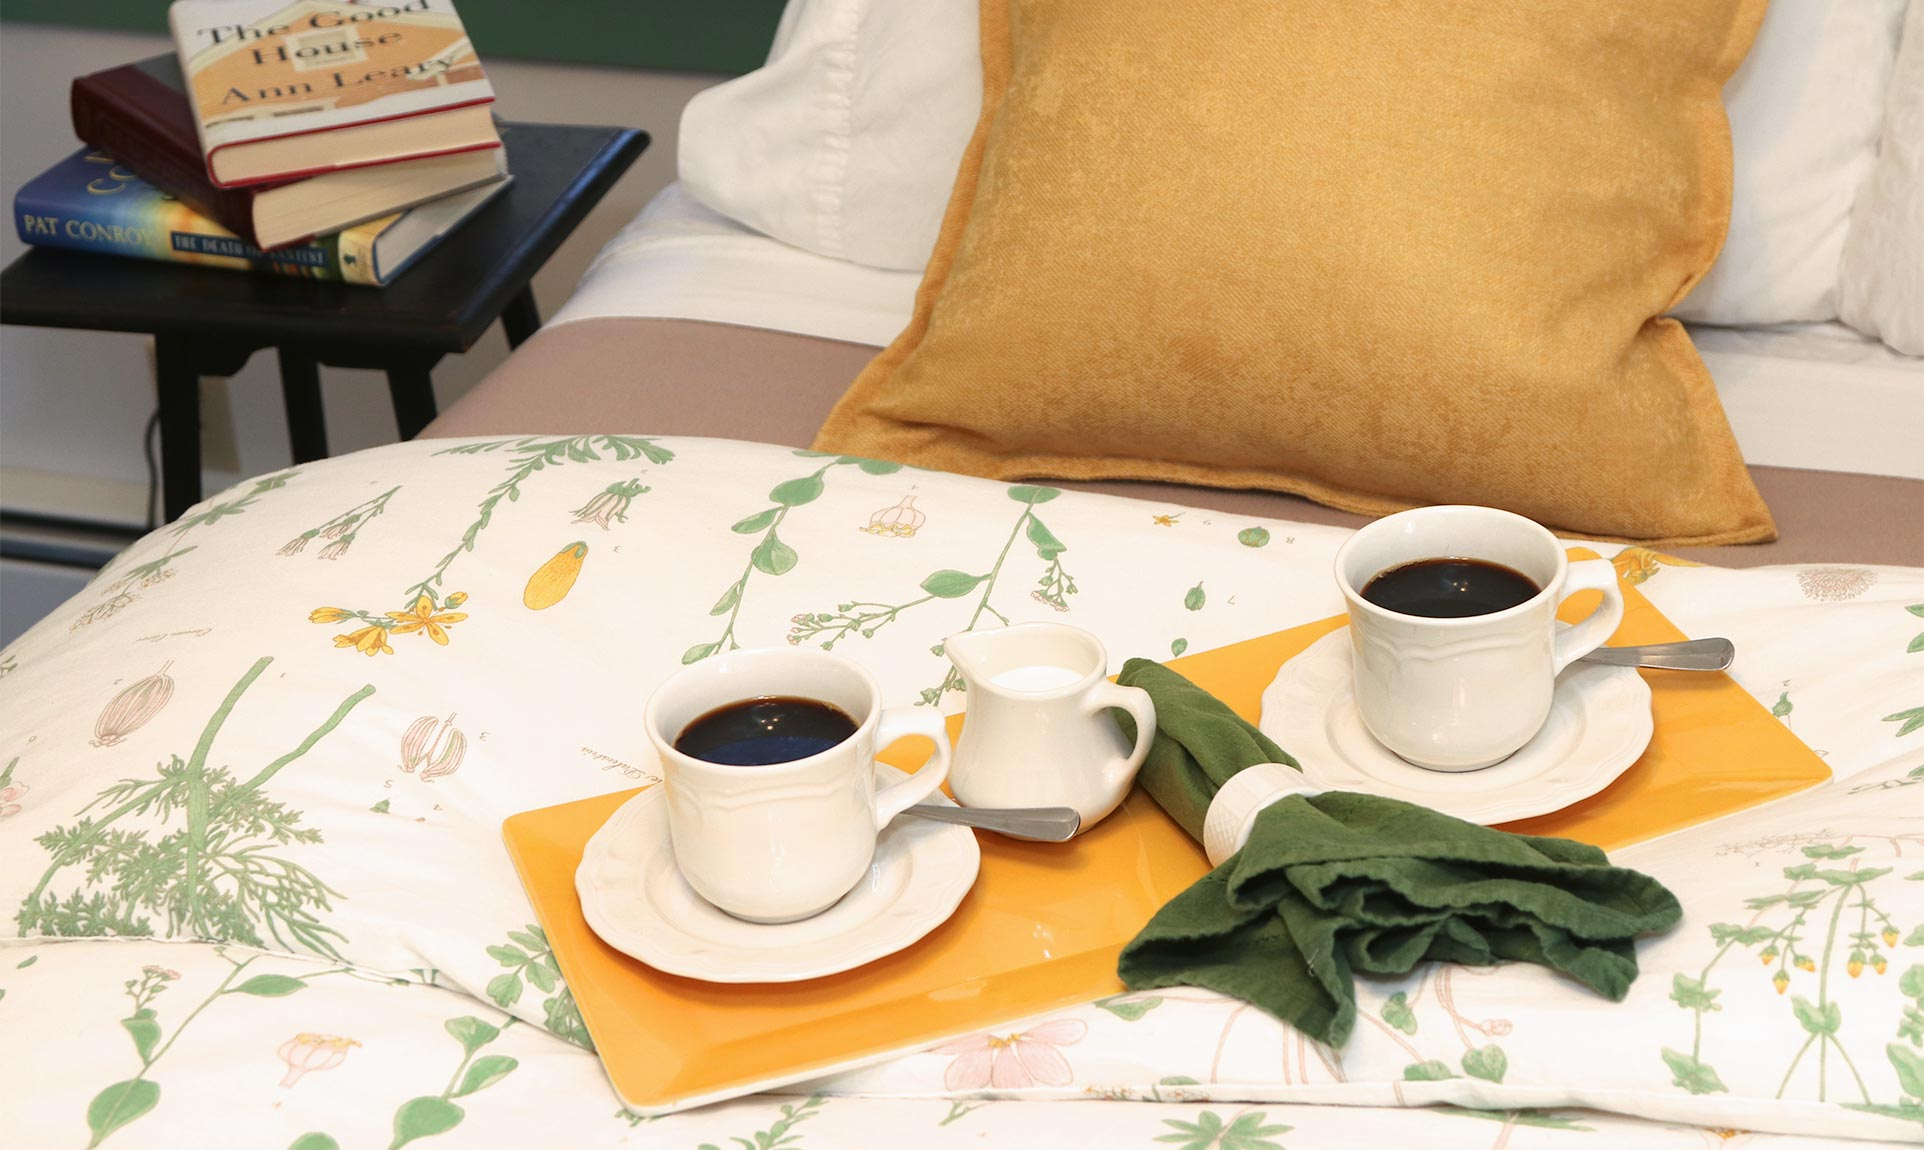 Two cups of coffee on saucers on a bed